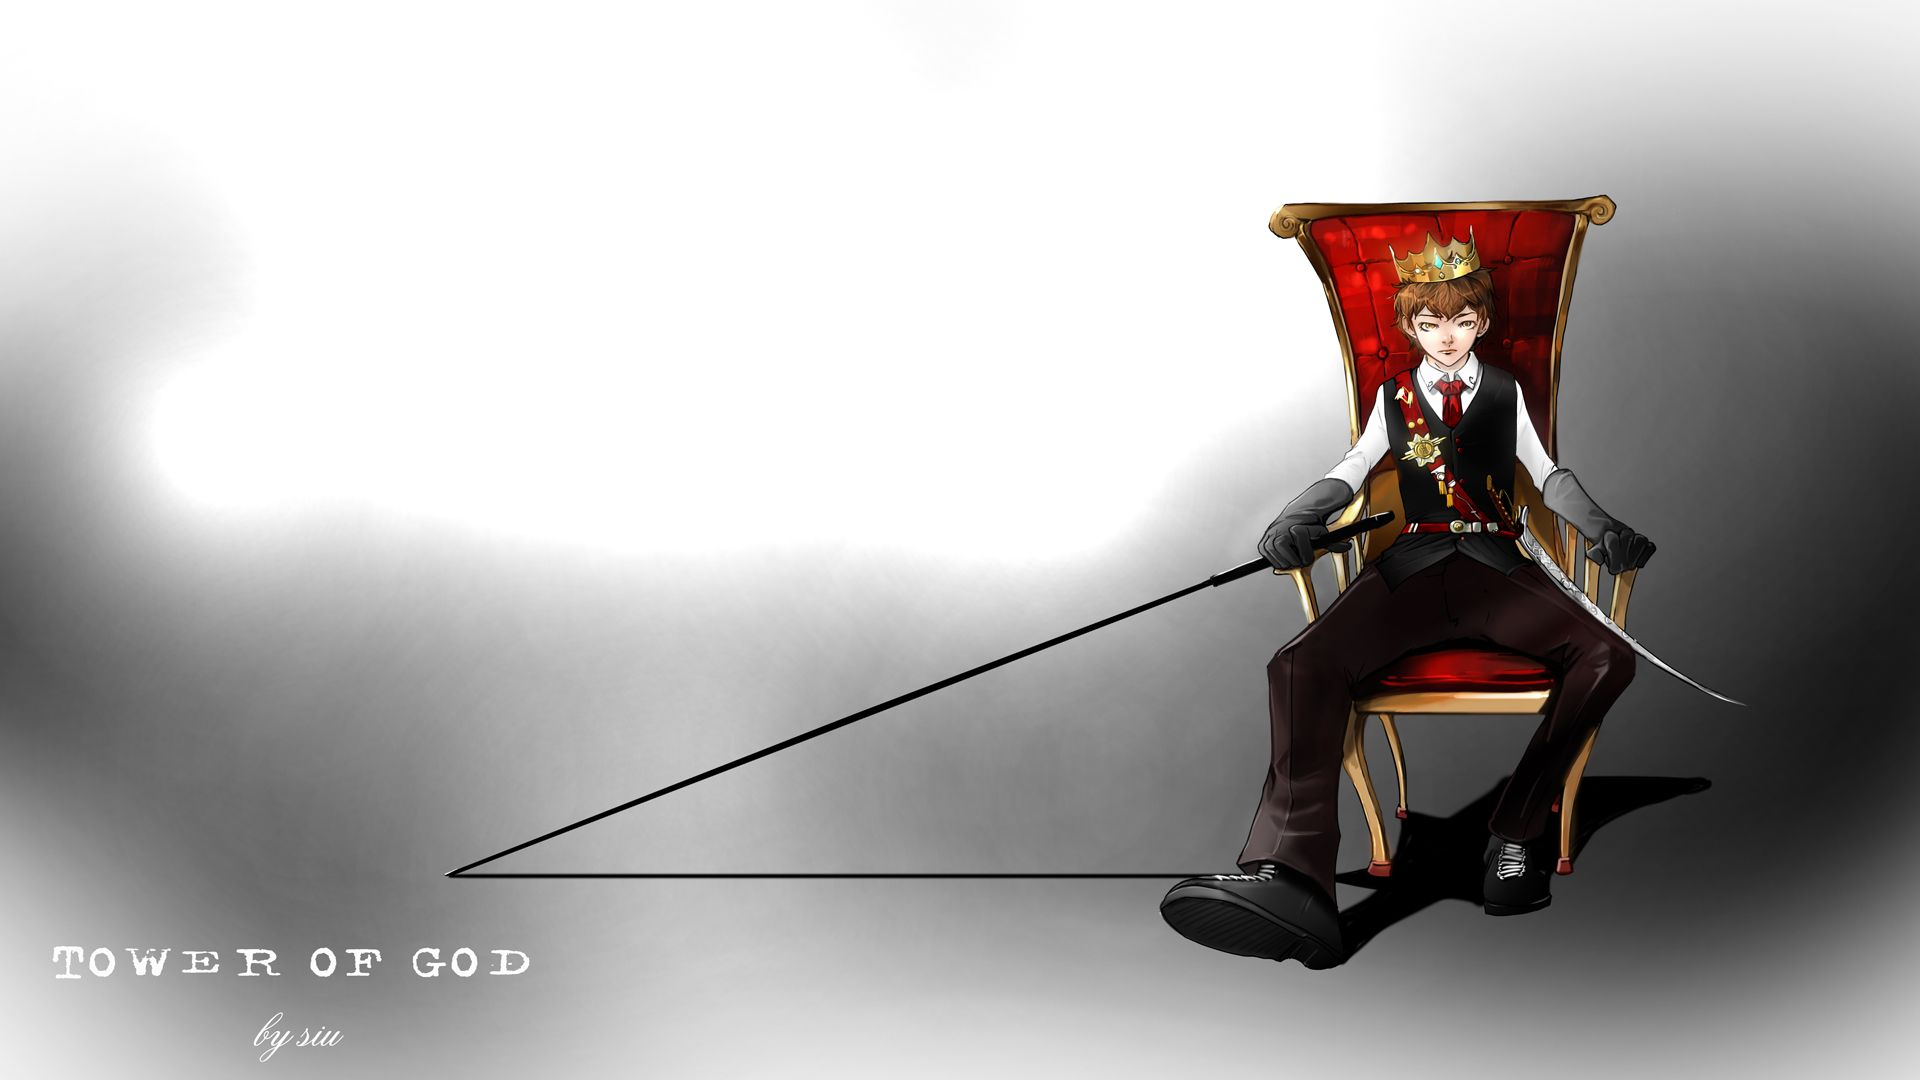 Tower Of God 1920x1080 R Animewallpaper Metal Posters Tower Poster Prints